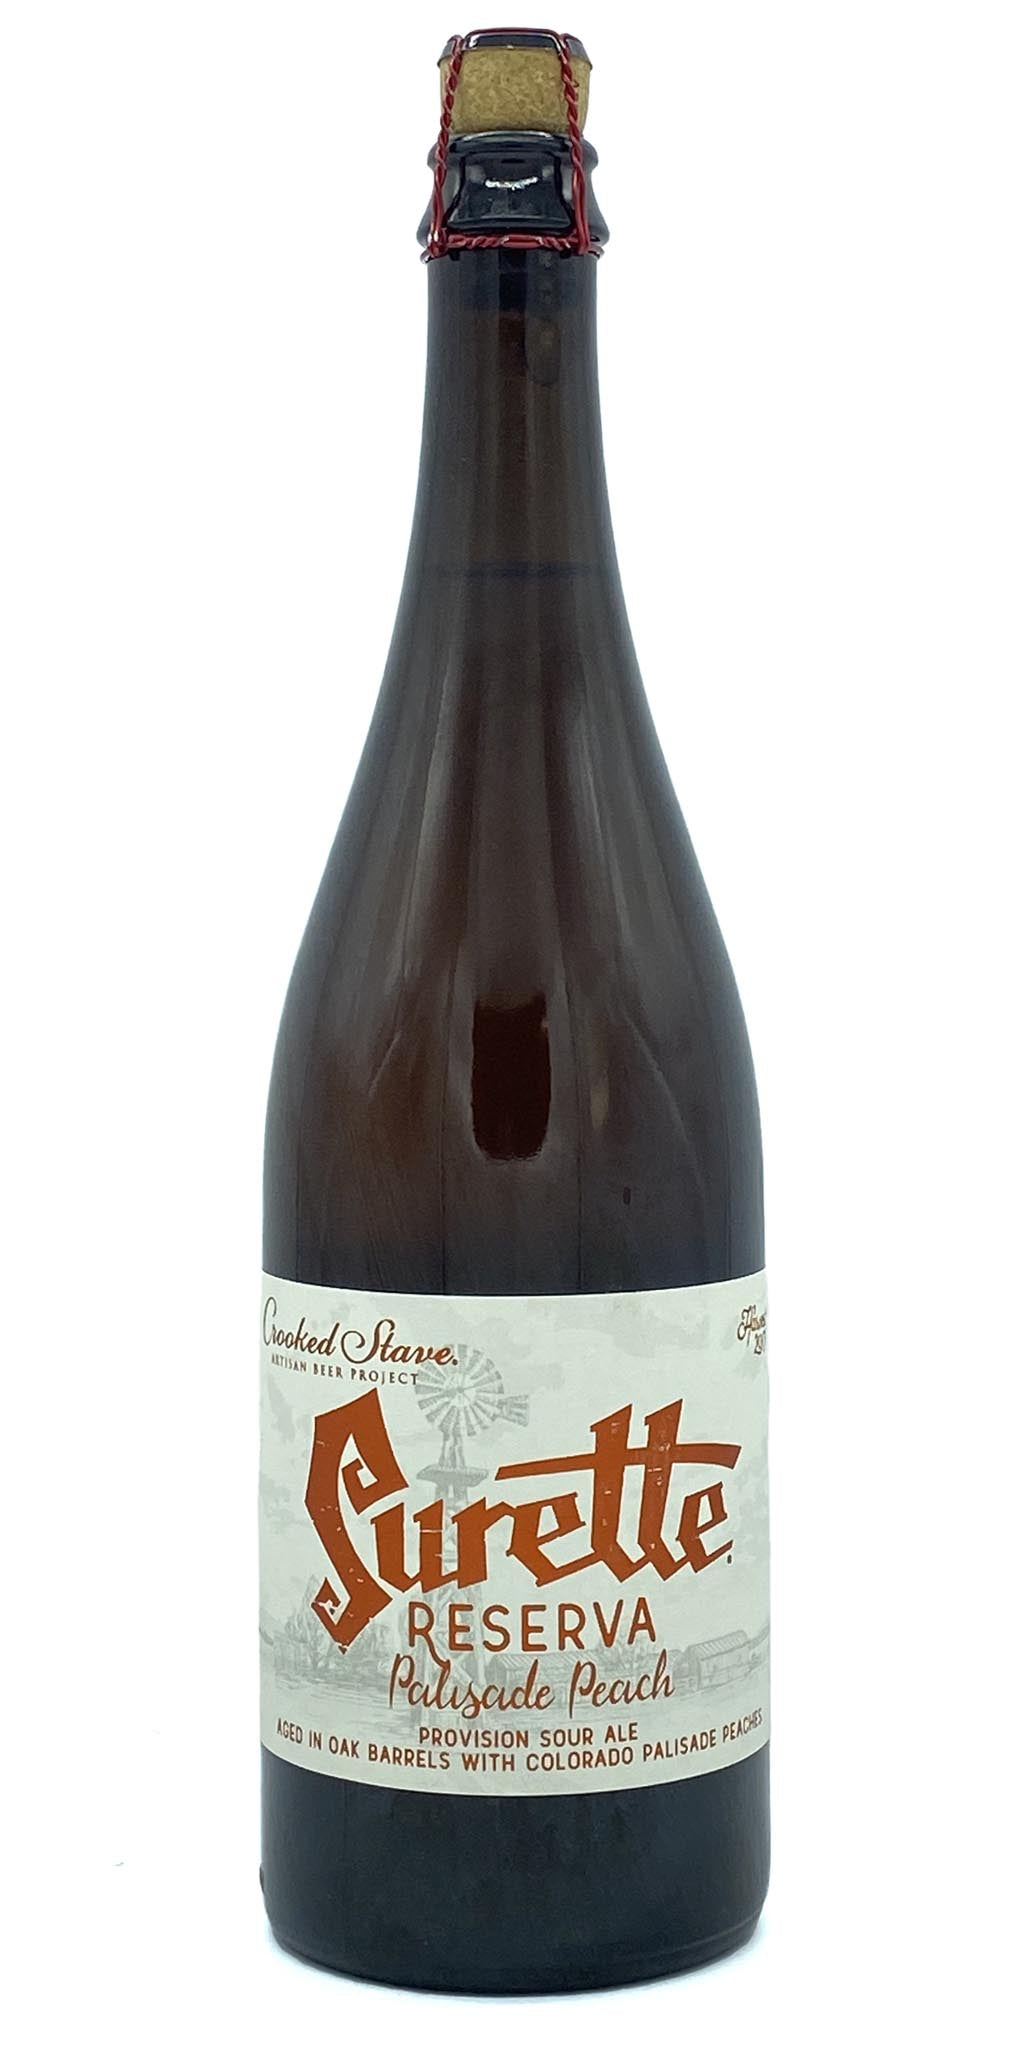 Crooked Stave - Surette Reserva Palisade Peach 2018